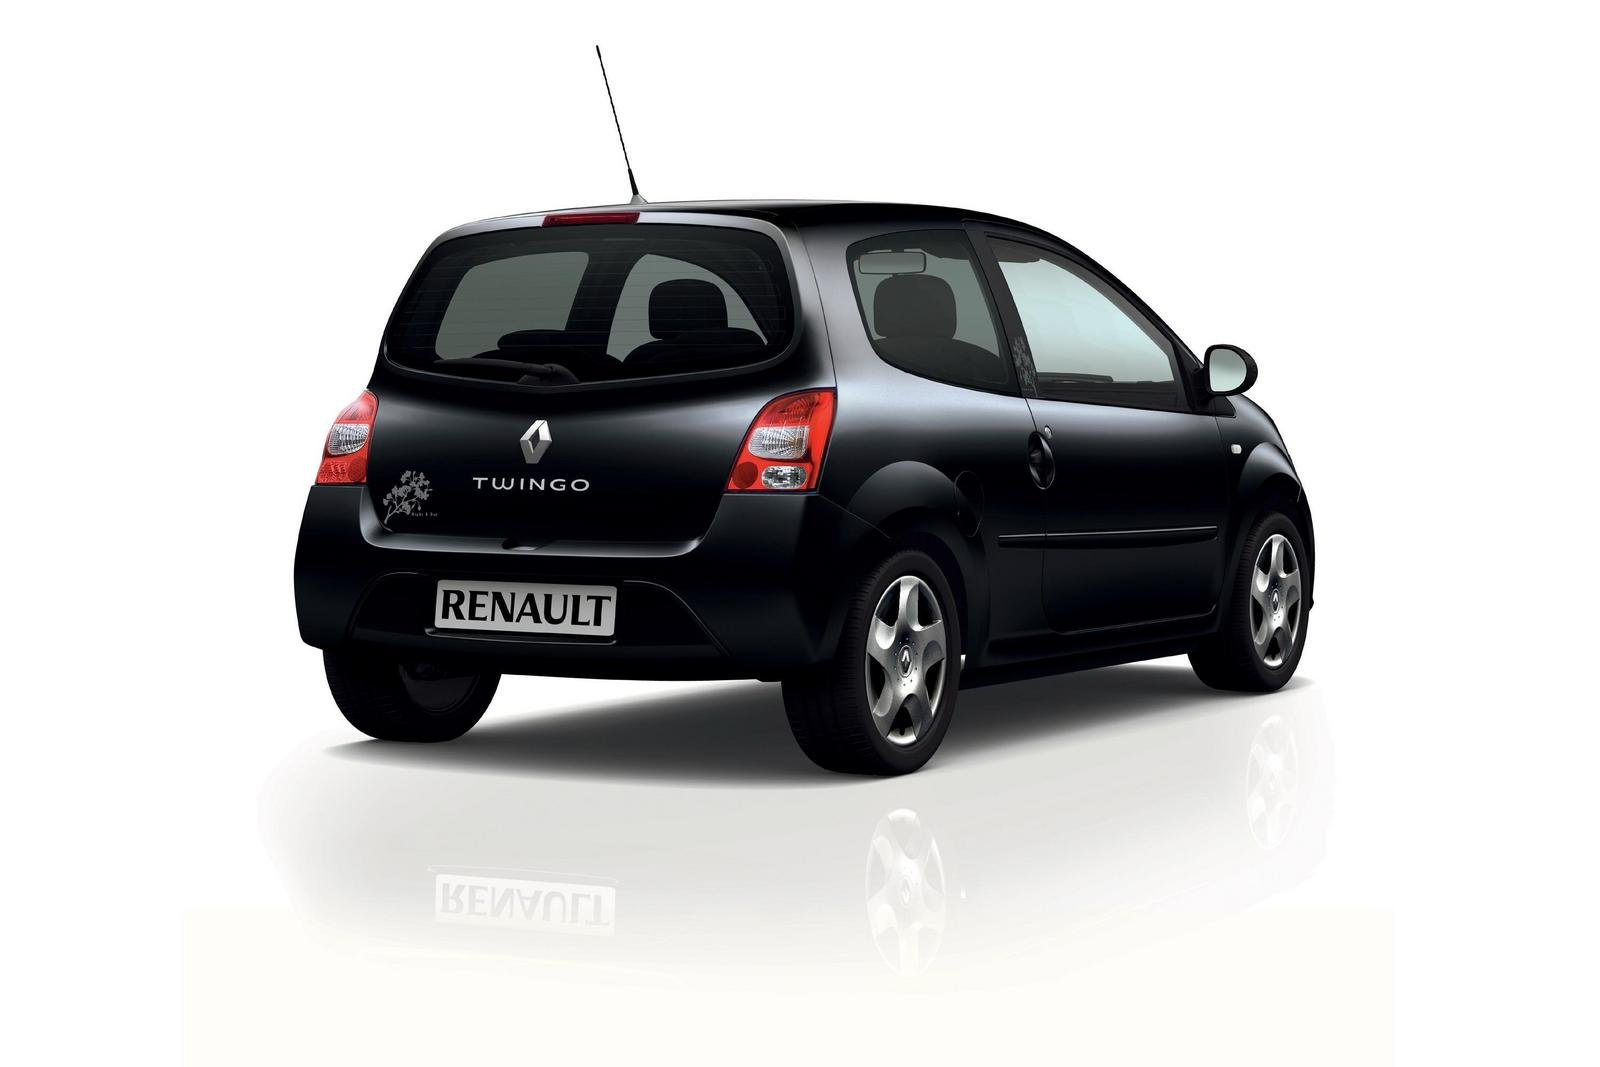 2008 renault twingo night and day picture 245251 car review top speed. Black Bedroom Furniture Sets. Home Design Ideas